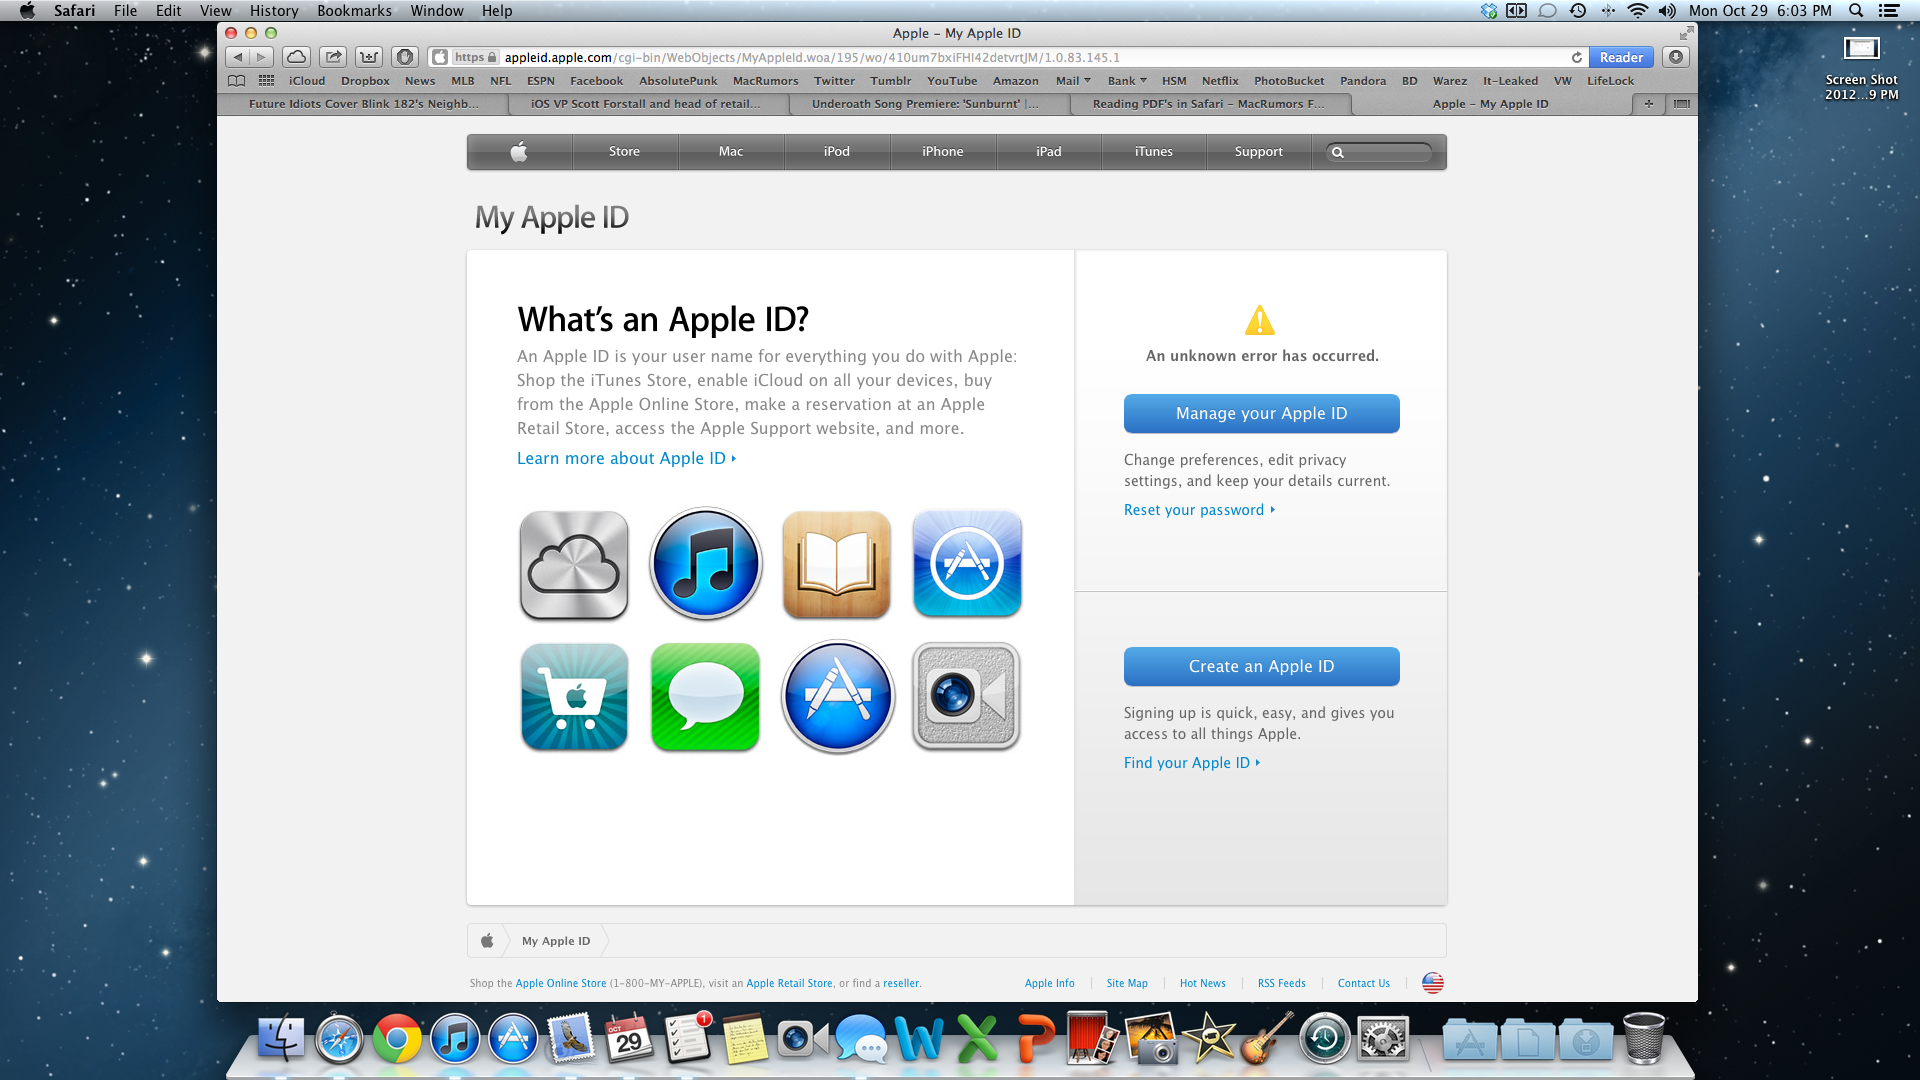 Is This A Scam Site or Apple's Website? | MacRumors Forums